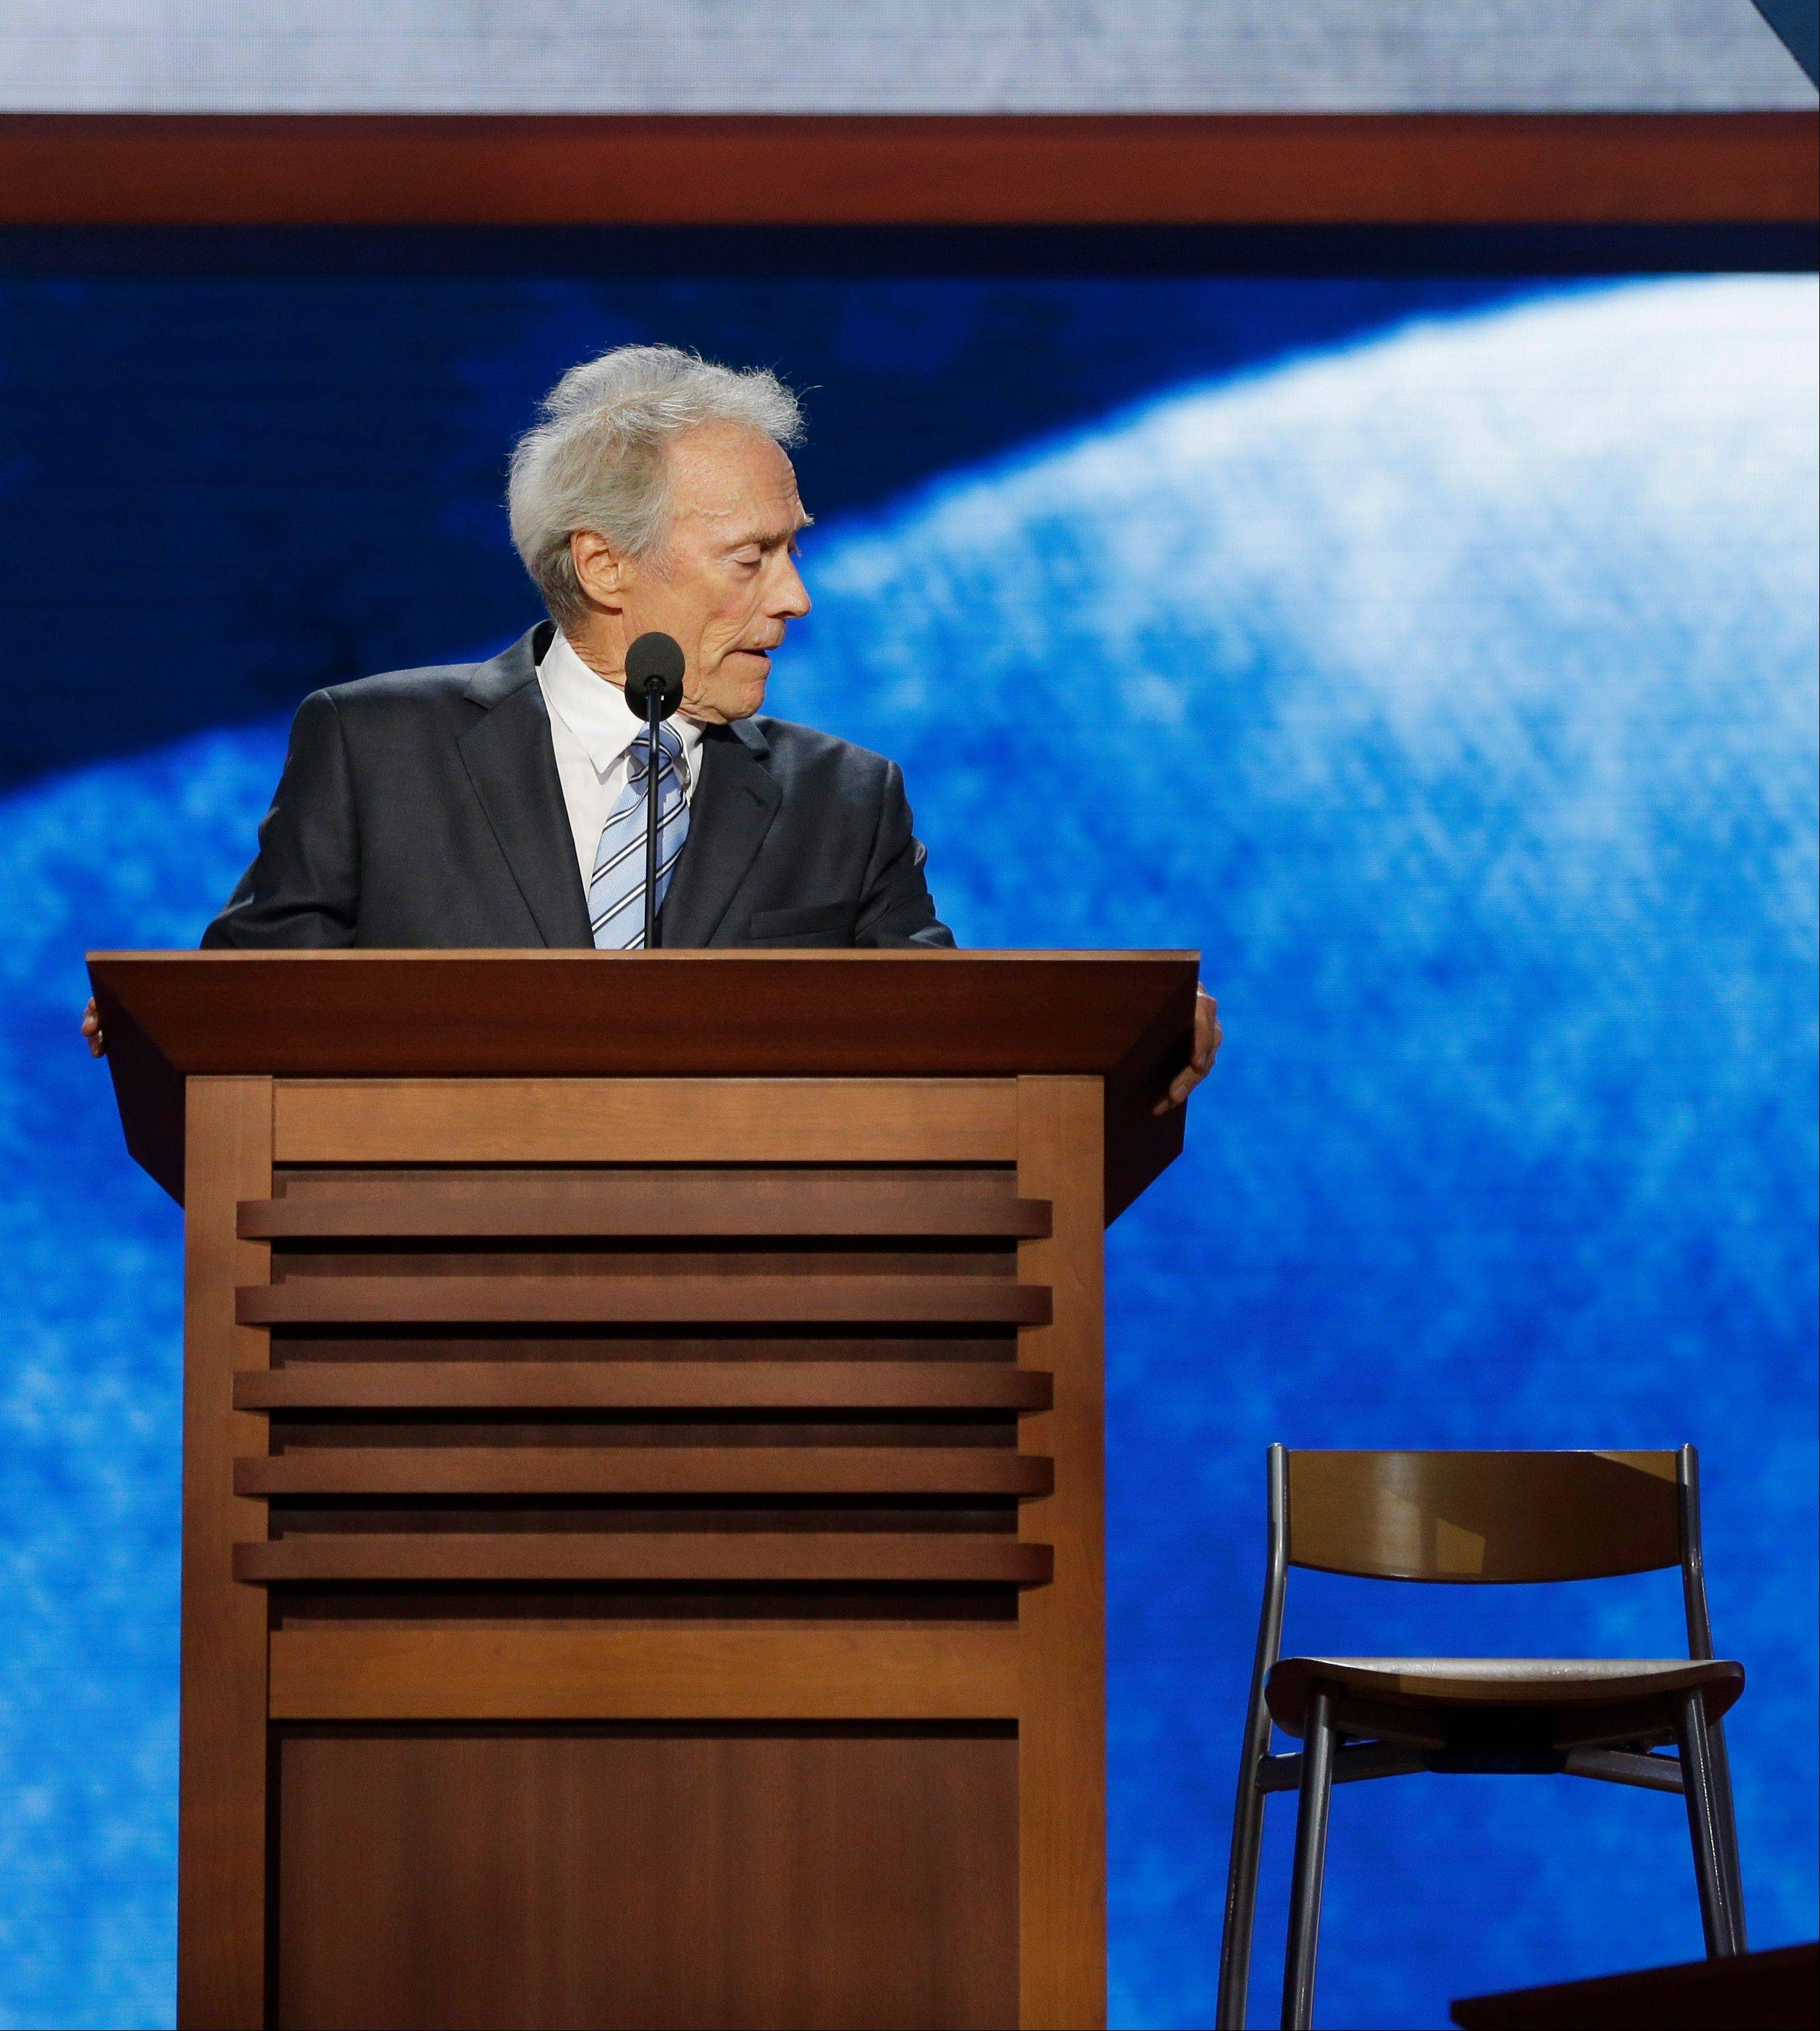 More than a week after Clint Eastwood delivered a speech to the Republican National Convention, the veteran Hollywood actor-director continues to be mocked for his peculiar, rambling conversation with an imaginary President Barack Obama in an empty chair onstage, begging the question: Will his latest film also be playing to empty seats when it debuts later this month?